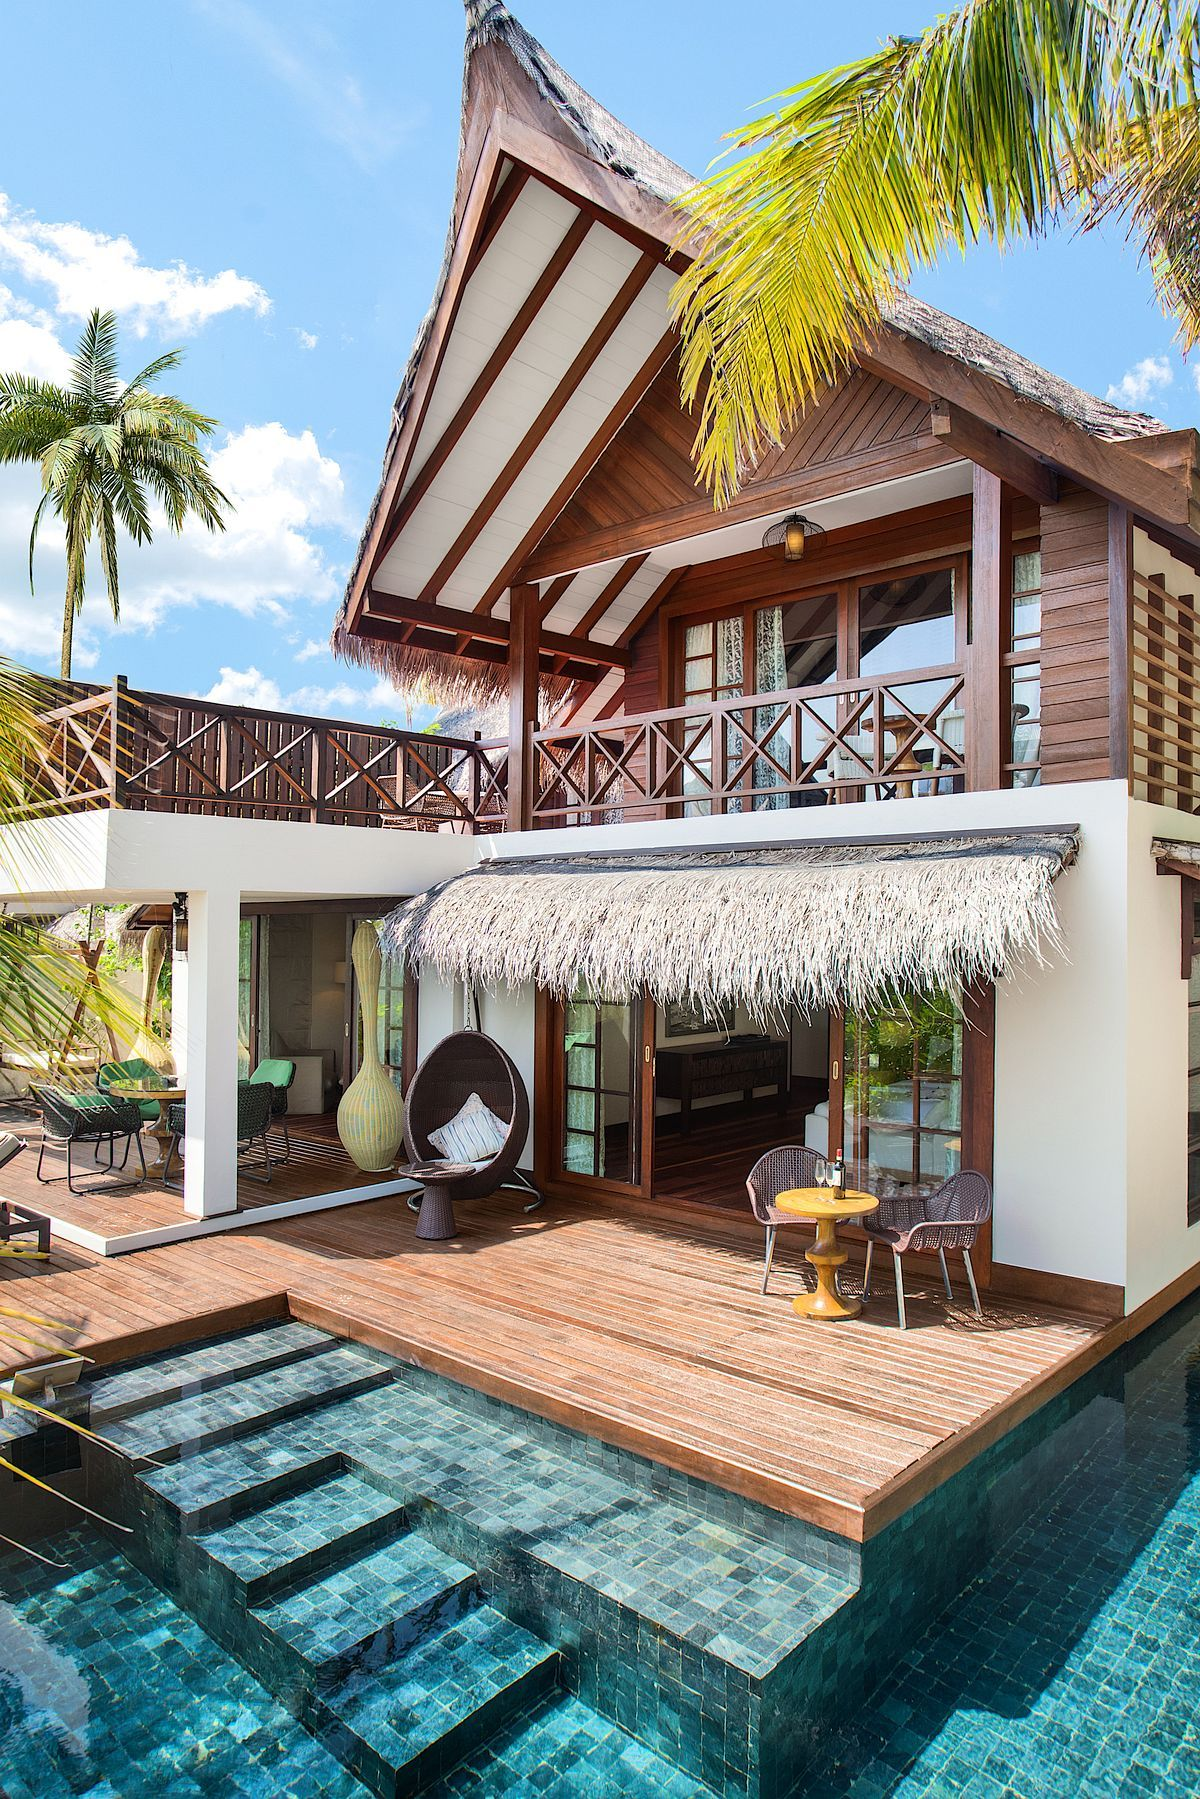 Beachfront Luxury Modern Home Exterior At Night: Jumeirah Vittaveli Nestled On A Small Atoll In The... In 2020